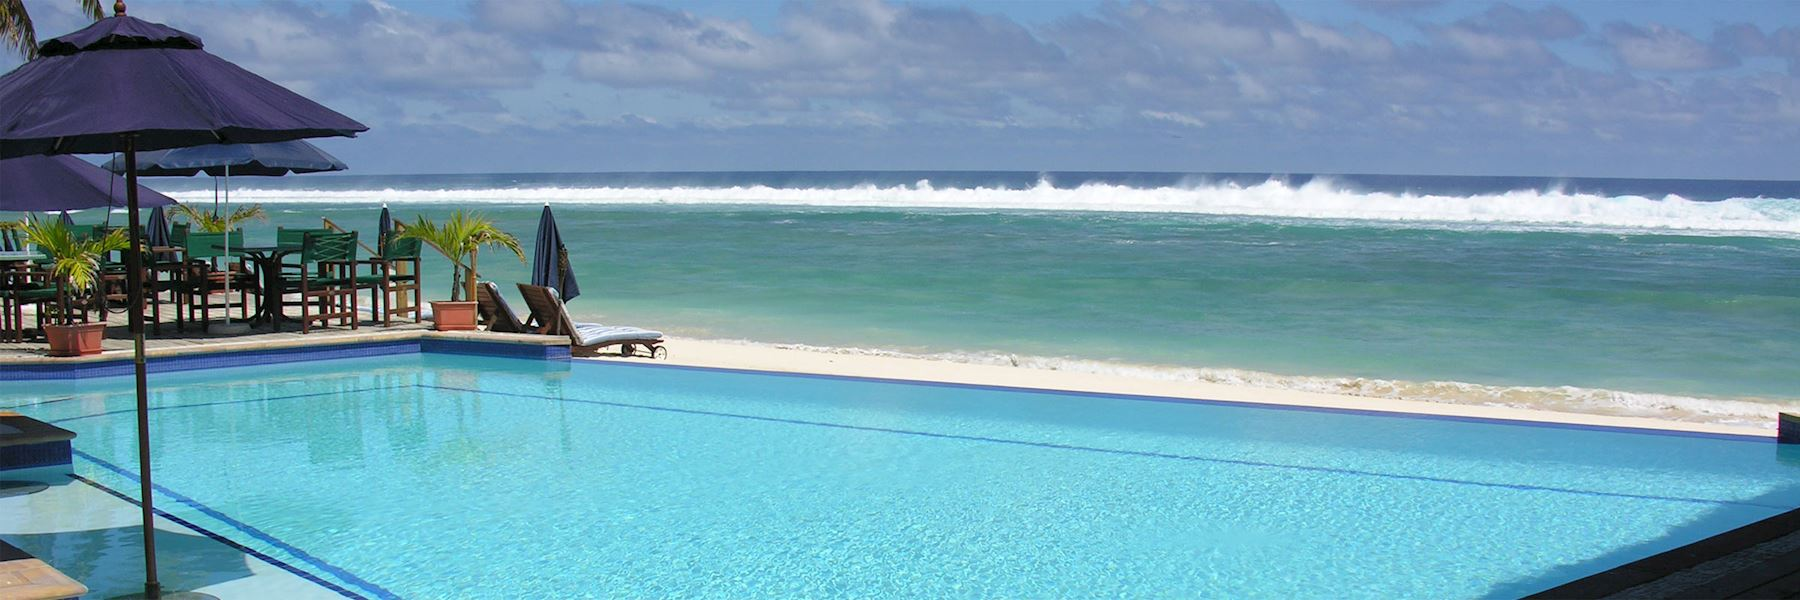 Accommodation in the Cook Islands